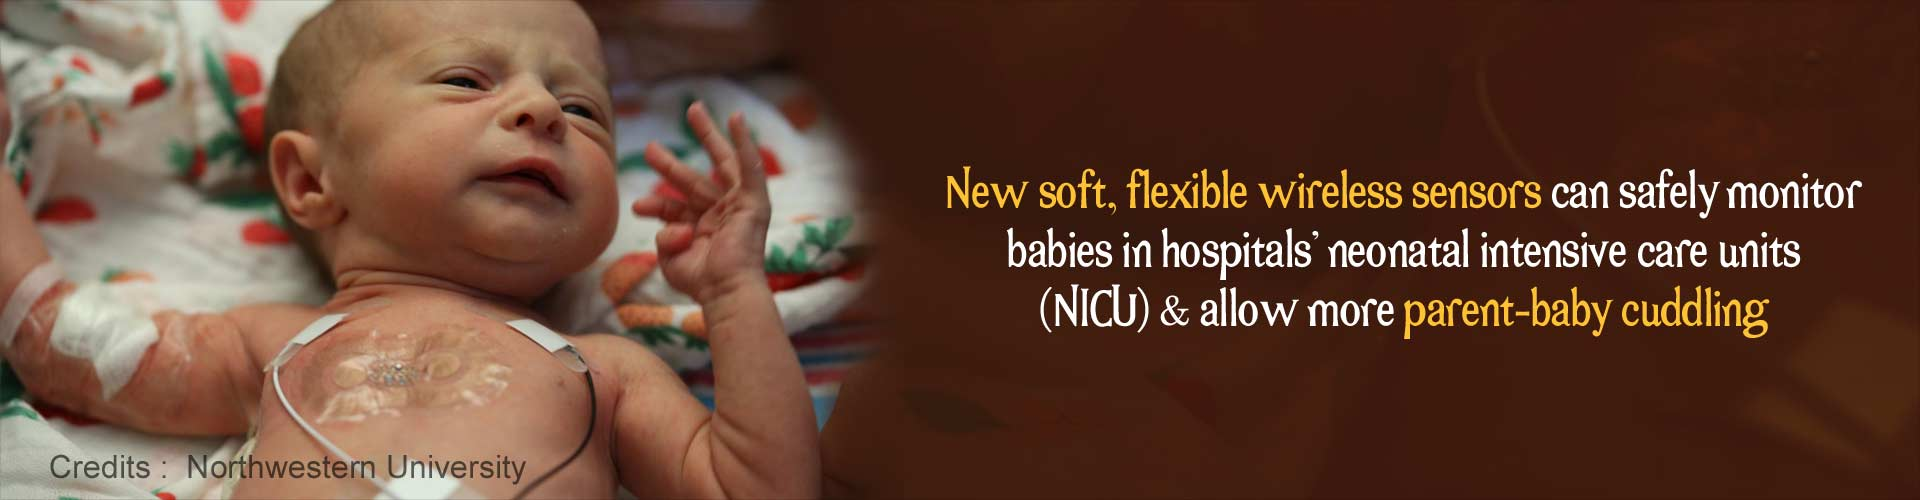 New Flexible Wireless Sensors Can Monitor Babies in the NICU